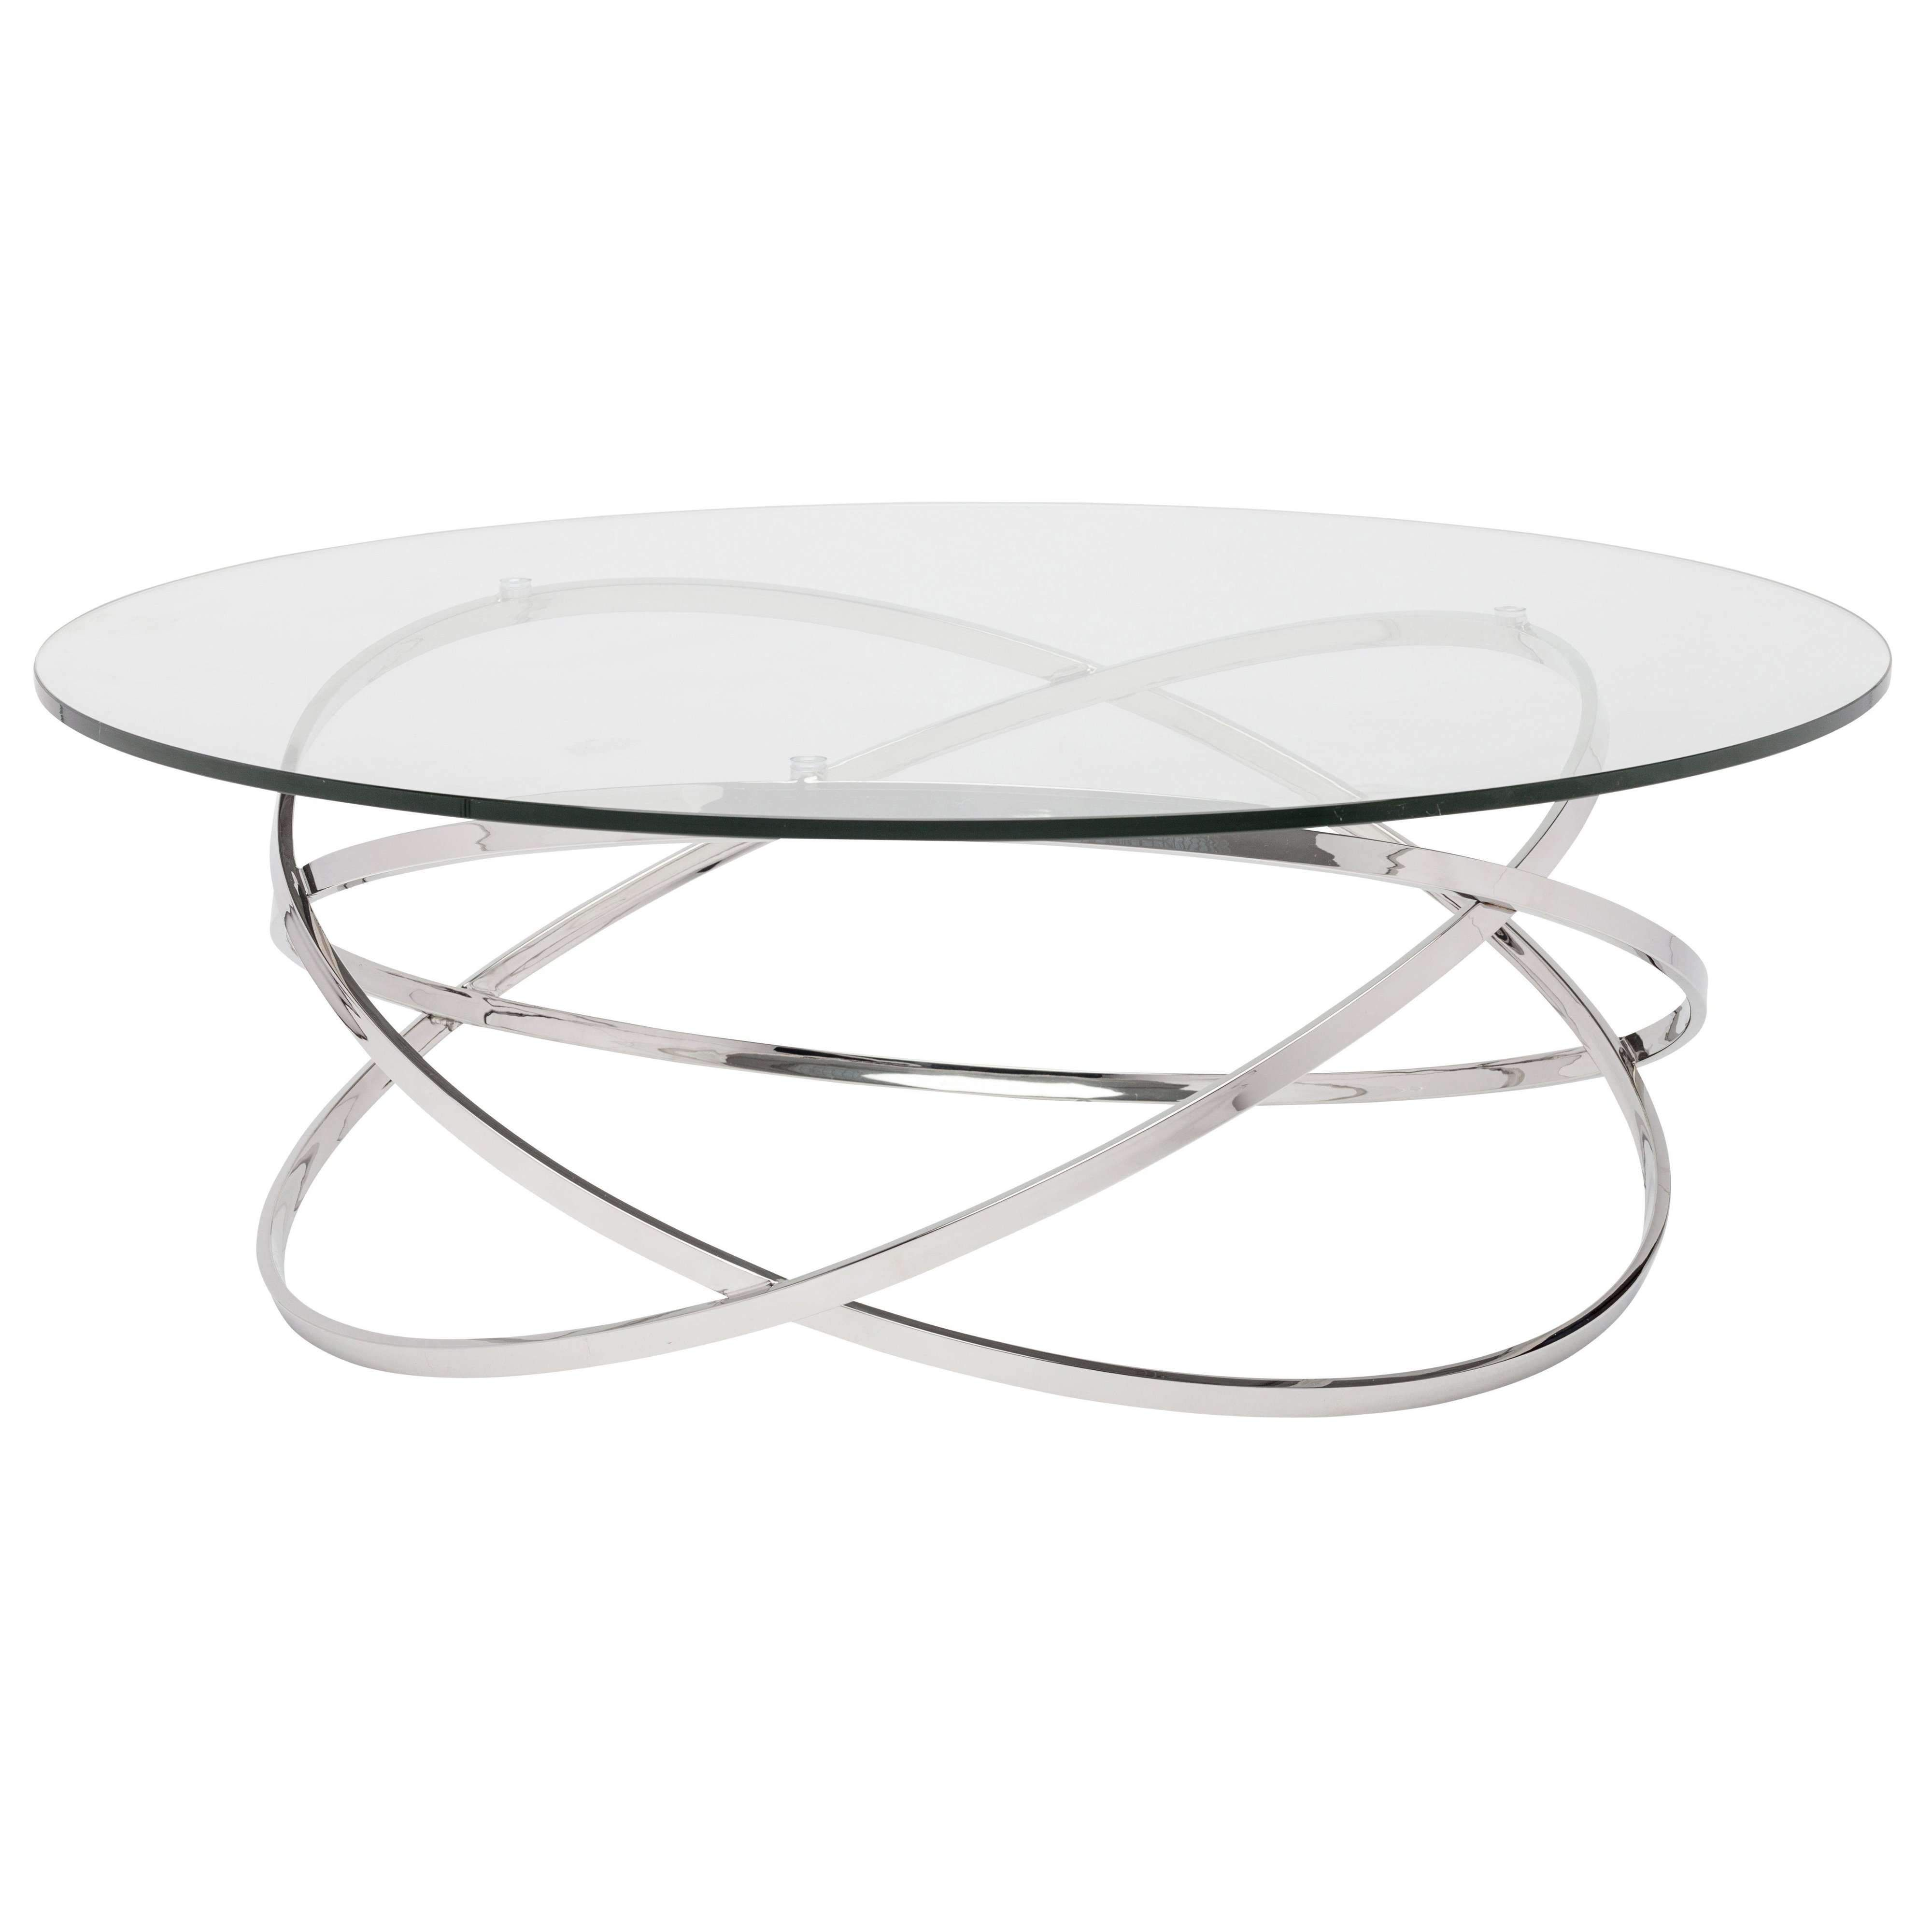 Corel Coffee Table Cleardefault Title Round Glass Coffee Table Silver Coffee Table Coffee Table [ 4000 x 4000 Pixel ]